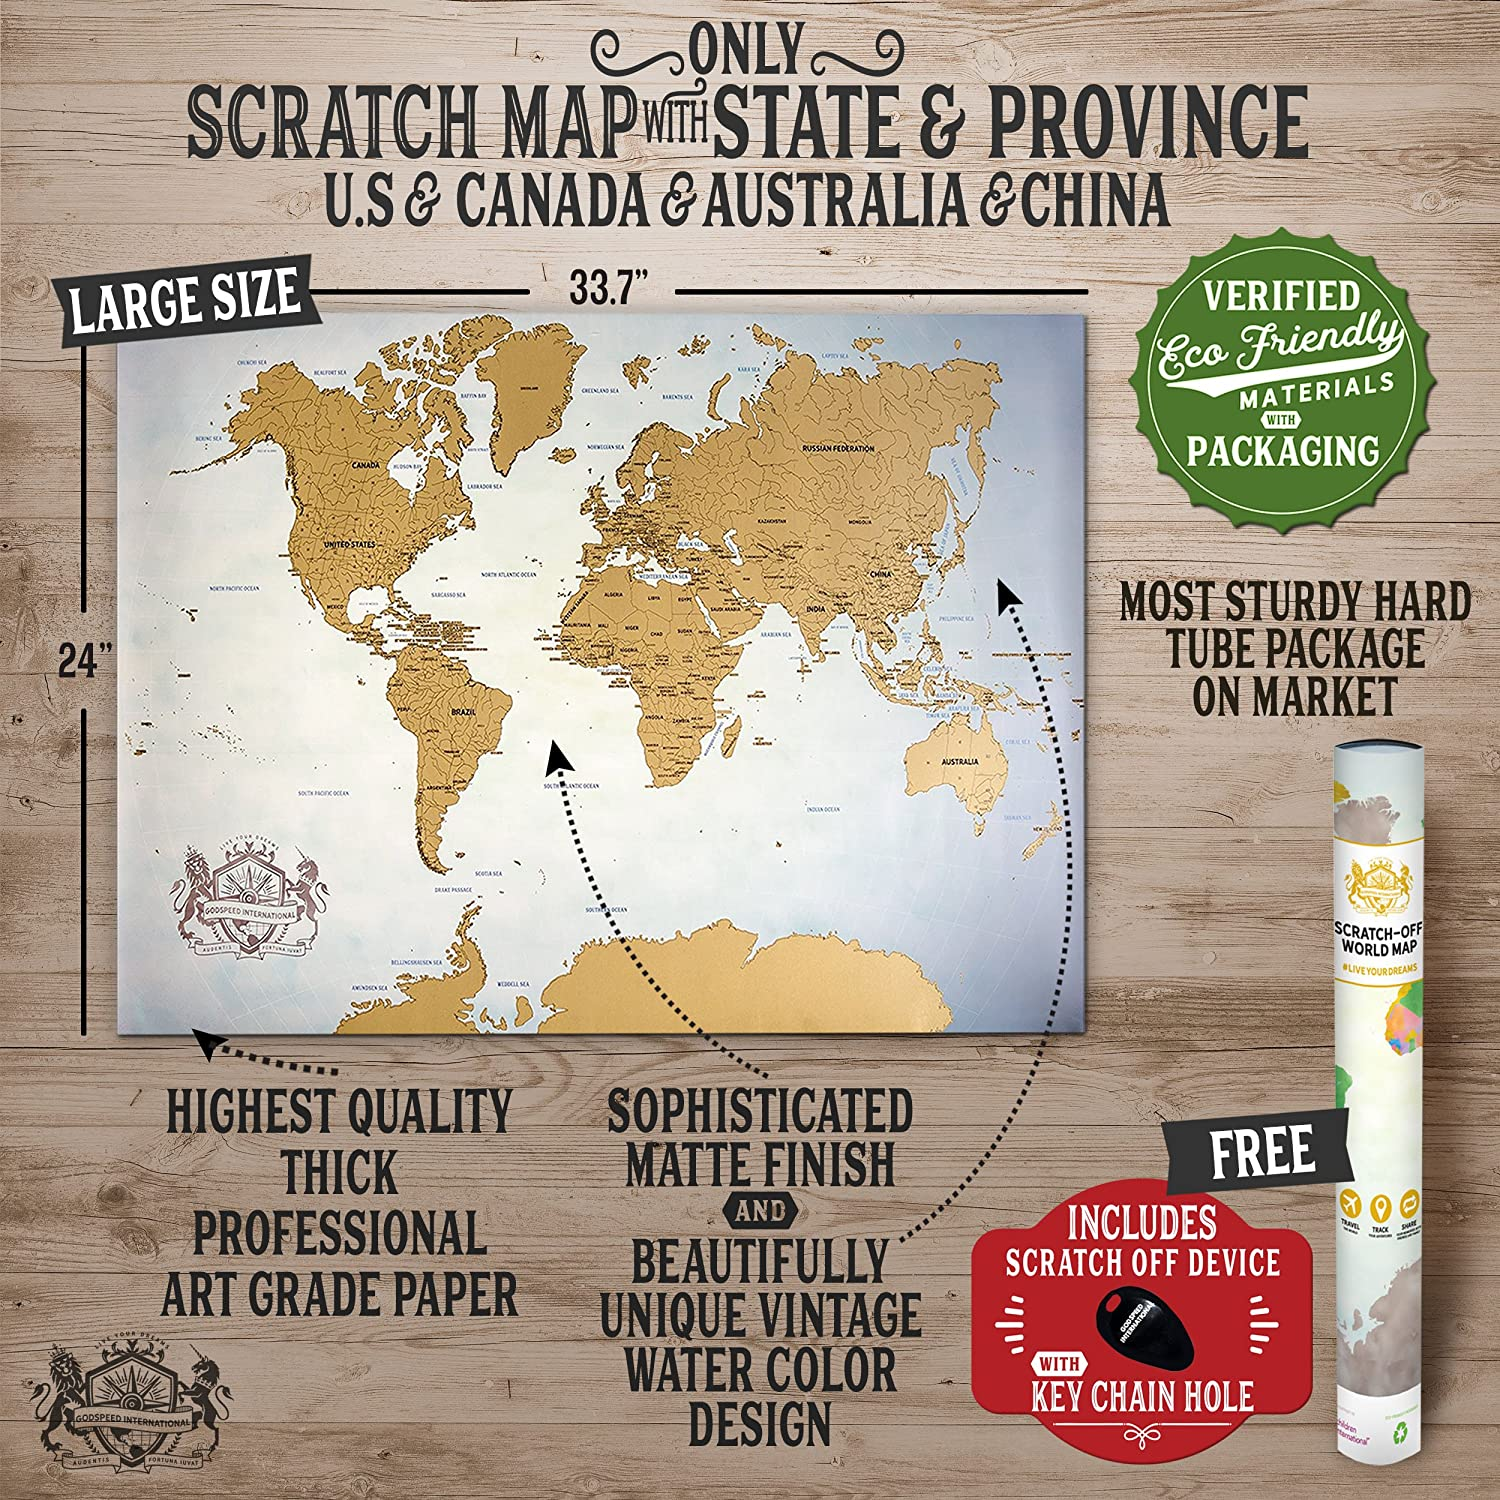 Amazon scratch off map of the world 337 x 24 world map amazon scratch off map of the world 337 x 24 world map poster state outlines of us map canada australia china travel map gift sexy gumiabroncs